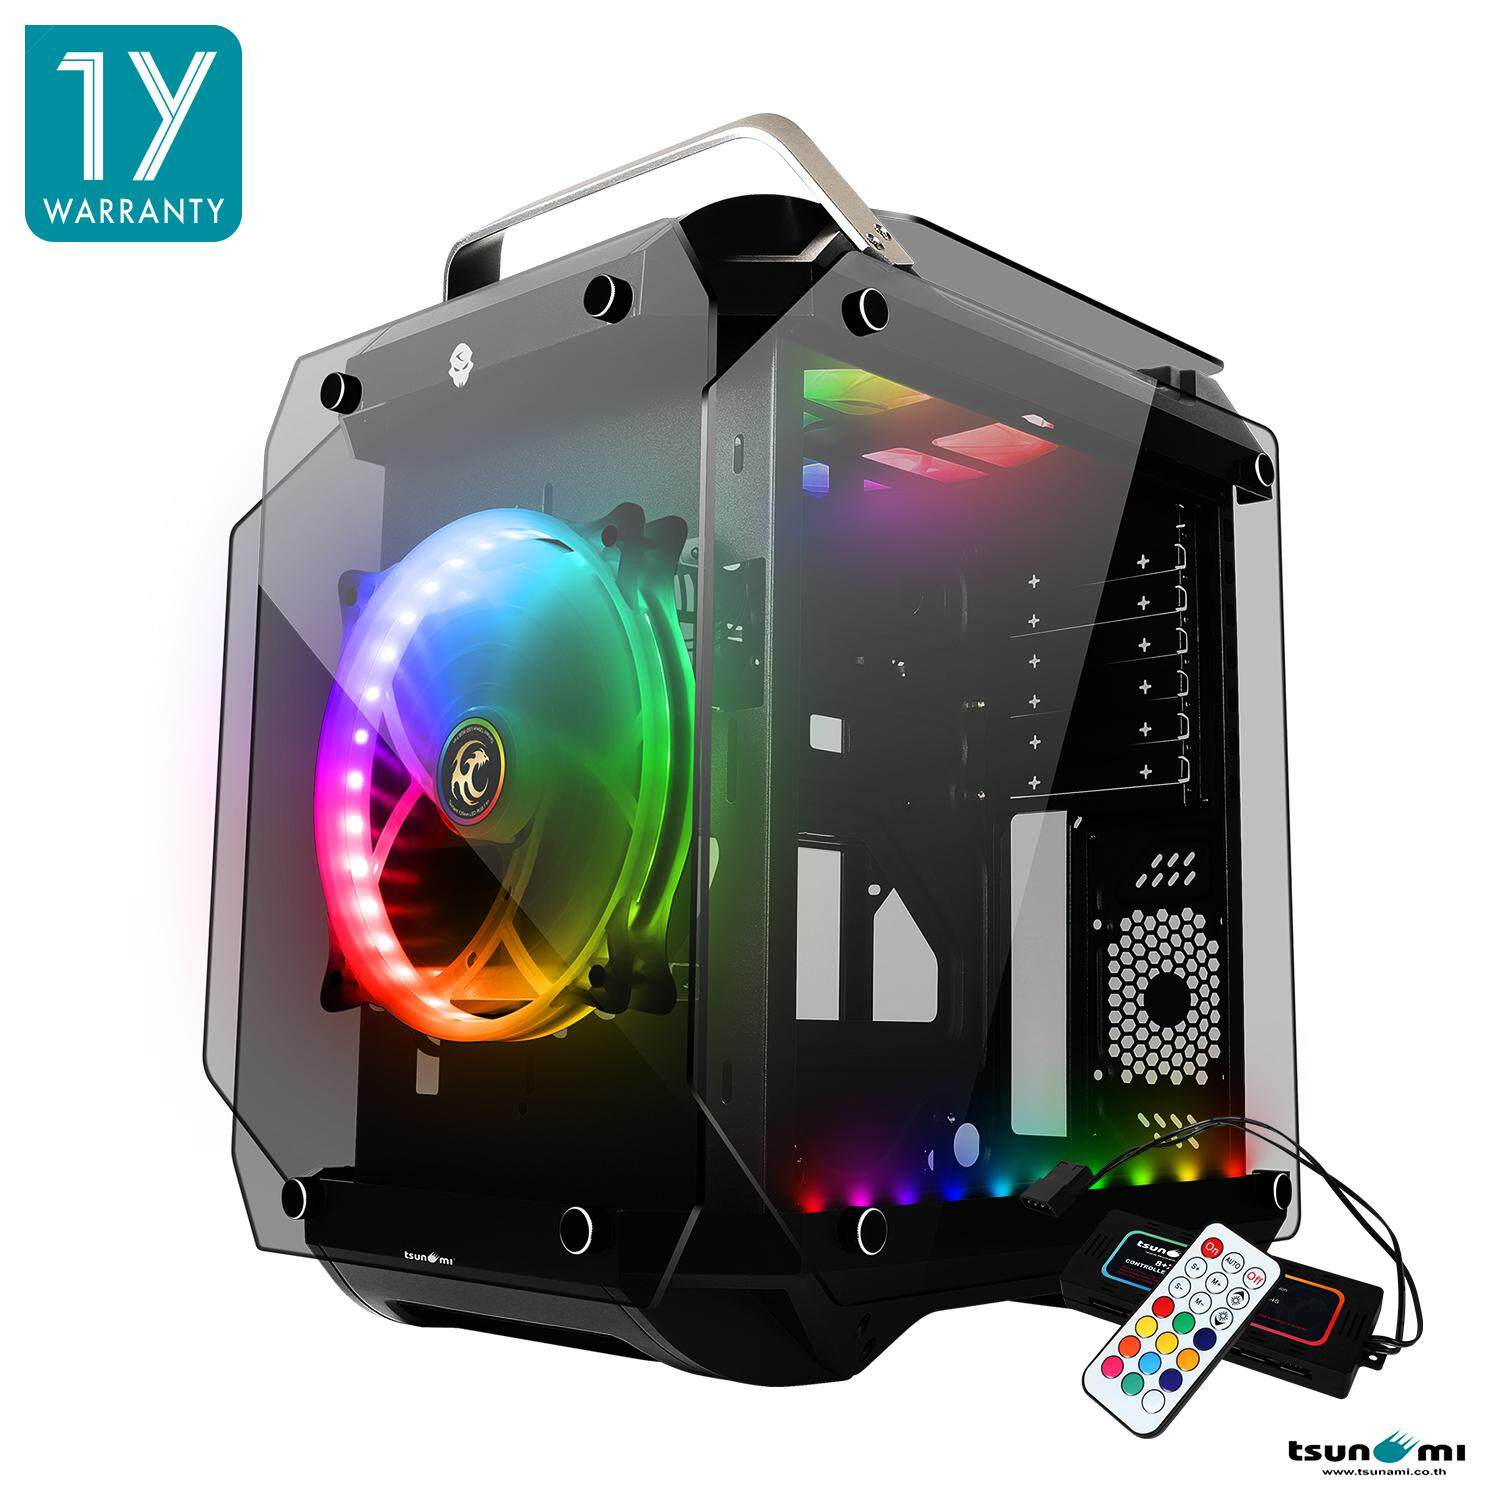 Tsunami Coolman Gorilla Super Atx ( Best Aero-Cooling Solution) Gaming Computer Case Rgb By Fun Republic Co.,ltd..